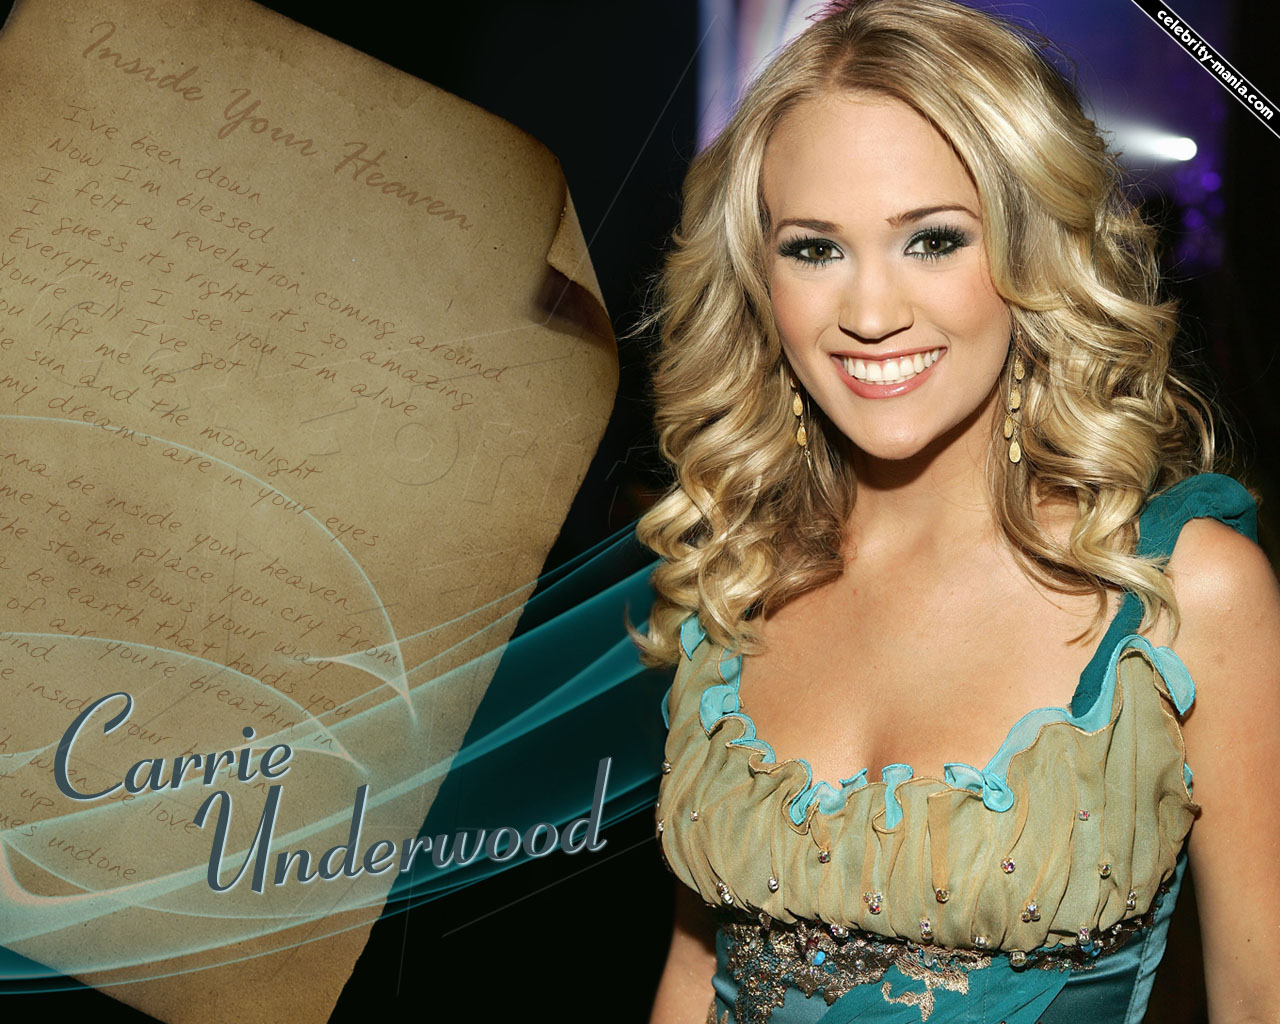 Carrie underwood wallpapers highlight wallpapers - Carrie underwood hd wallpaper ...